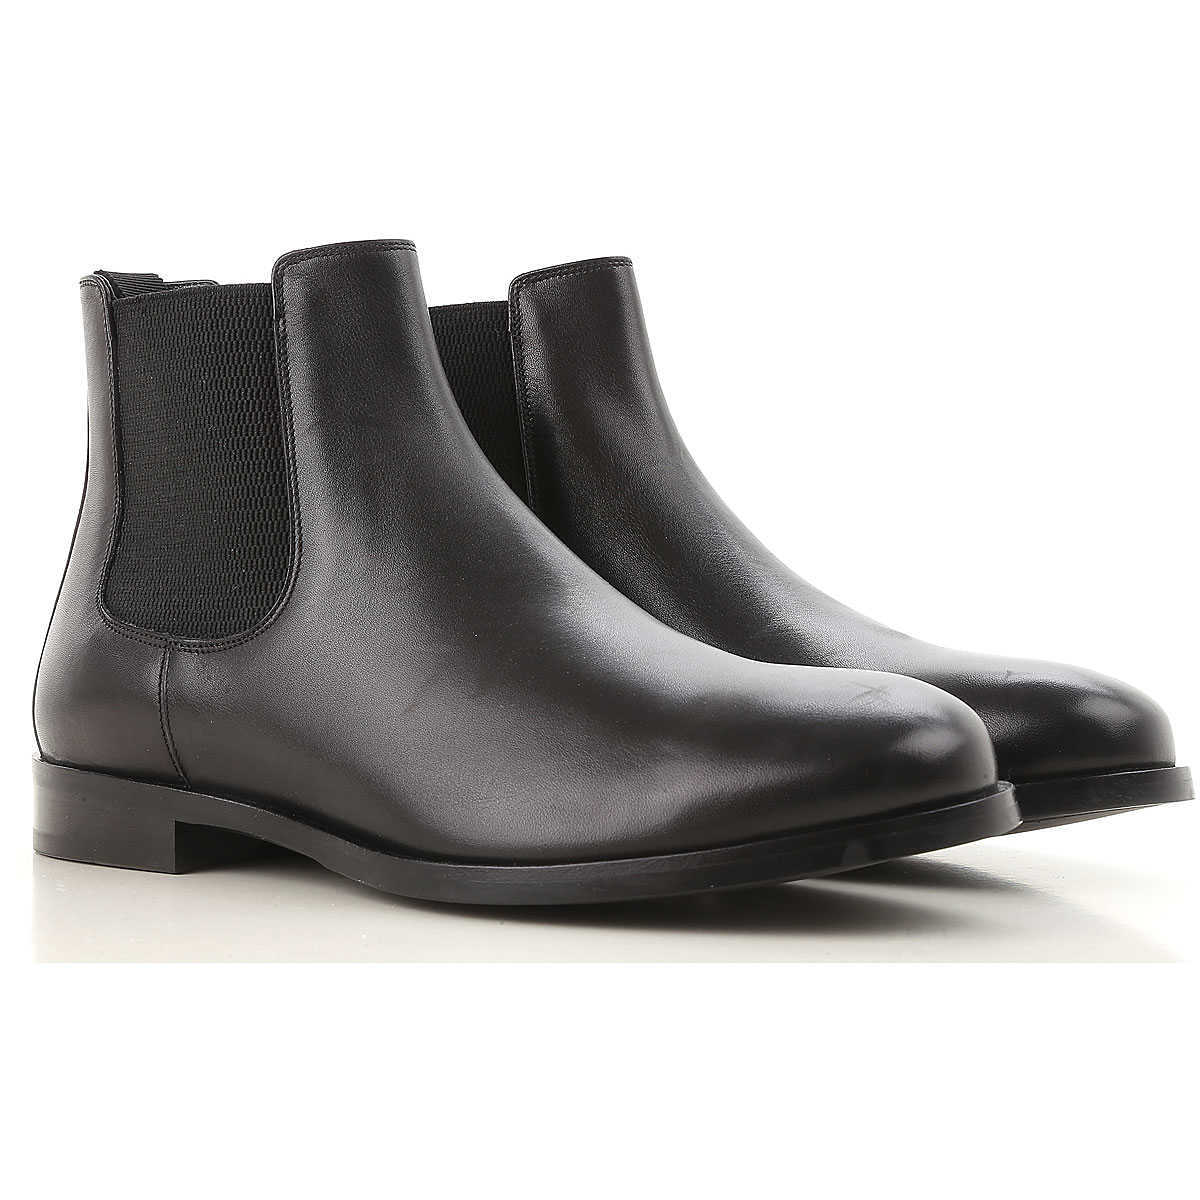 Dolce & Gabbana Boots for Men Booties On Sale in Outlet DK - GOOFASH - Mens BOOTS